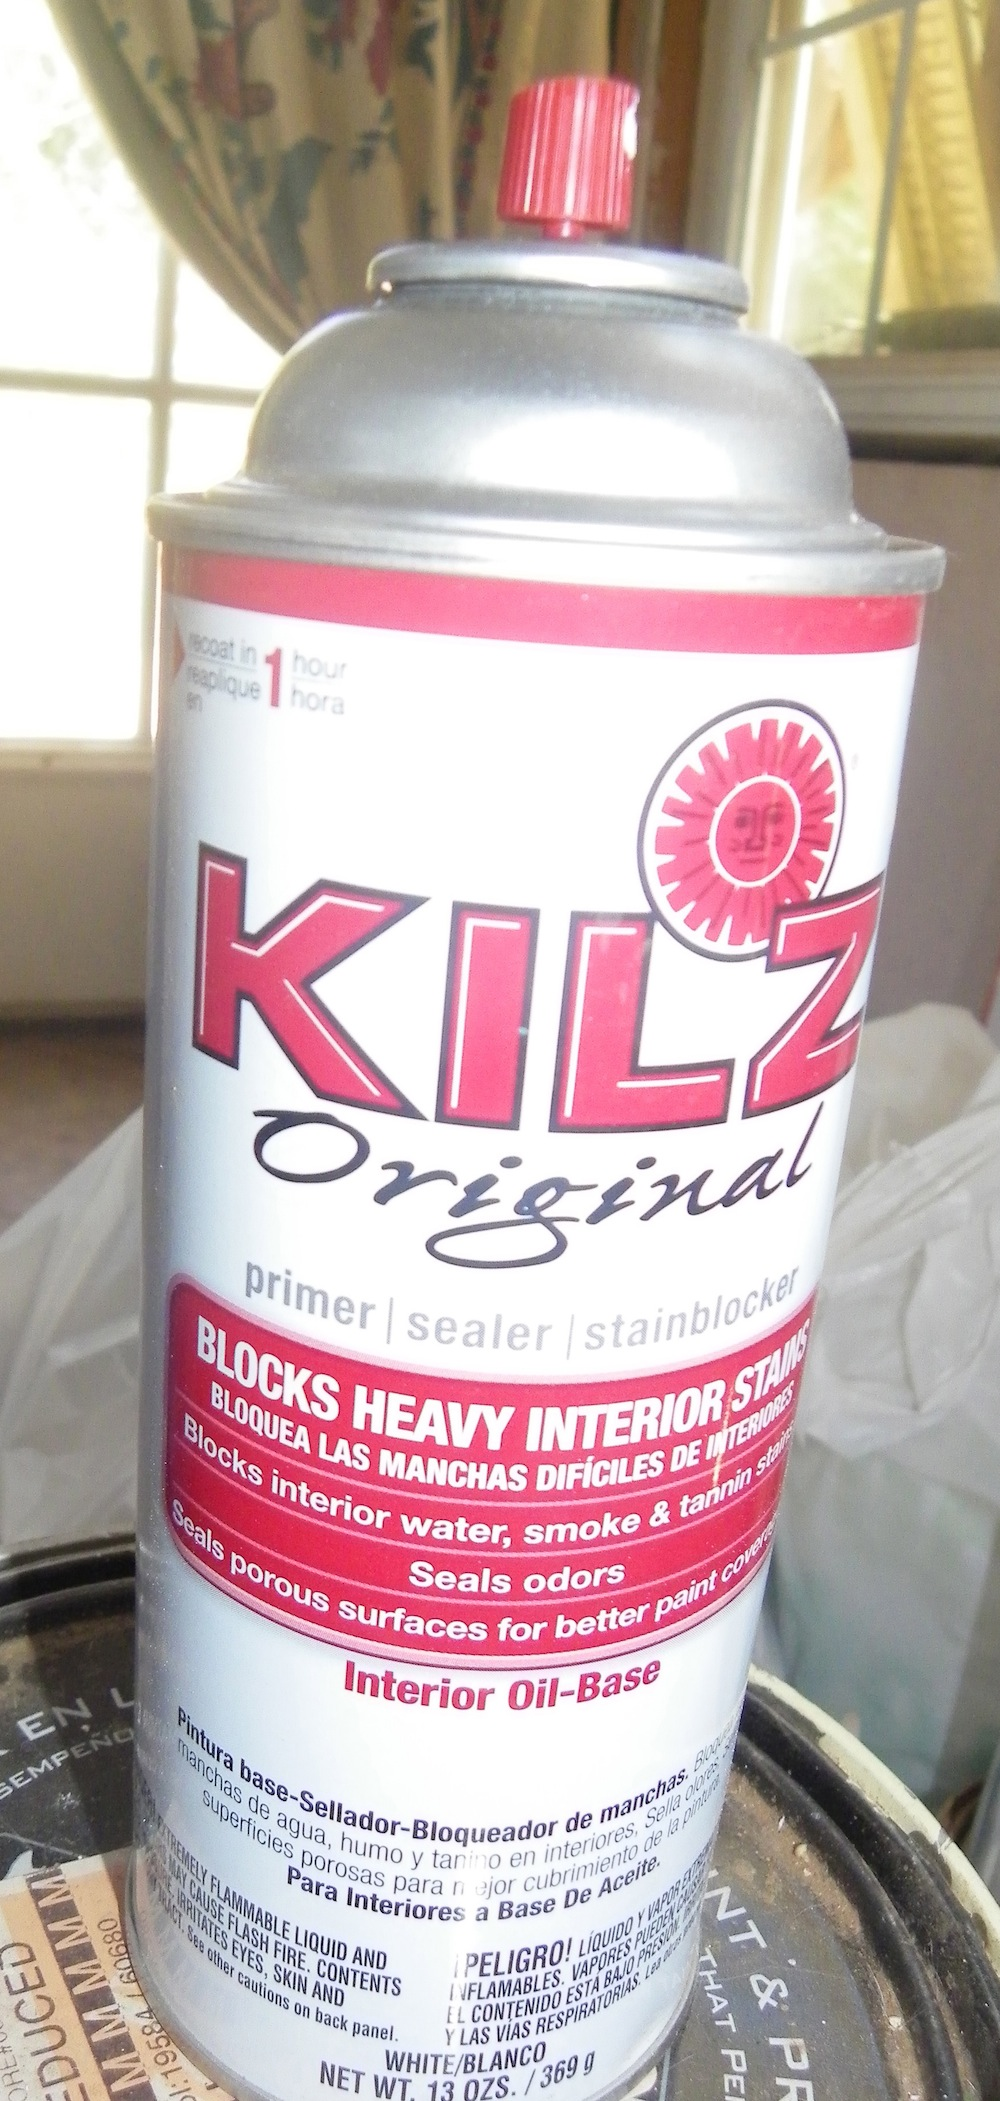 Kilz Spray Paint Primer